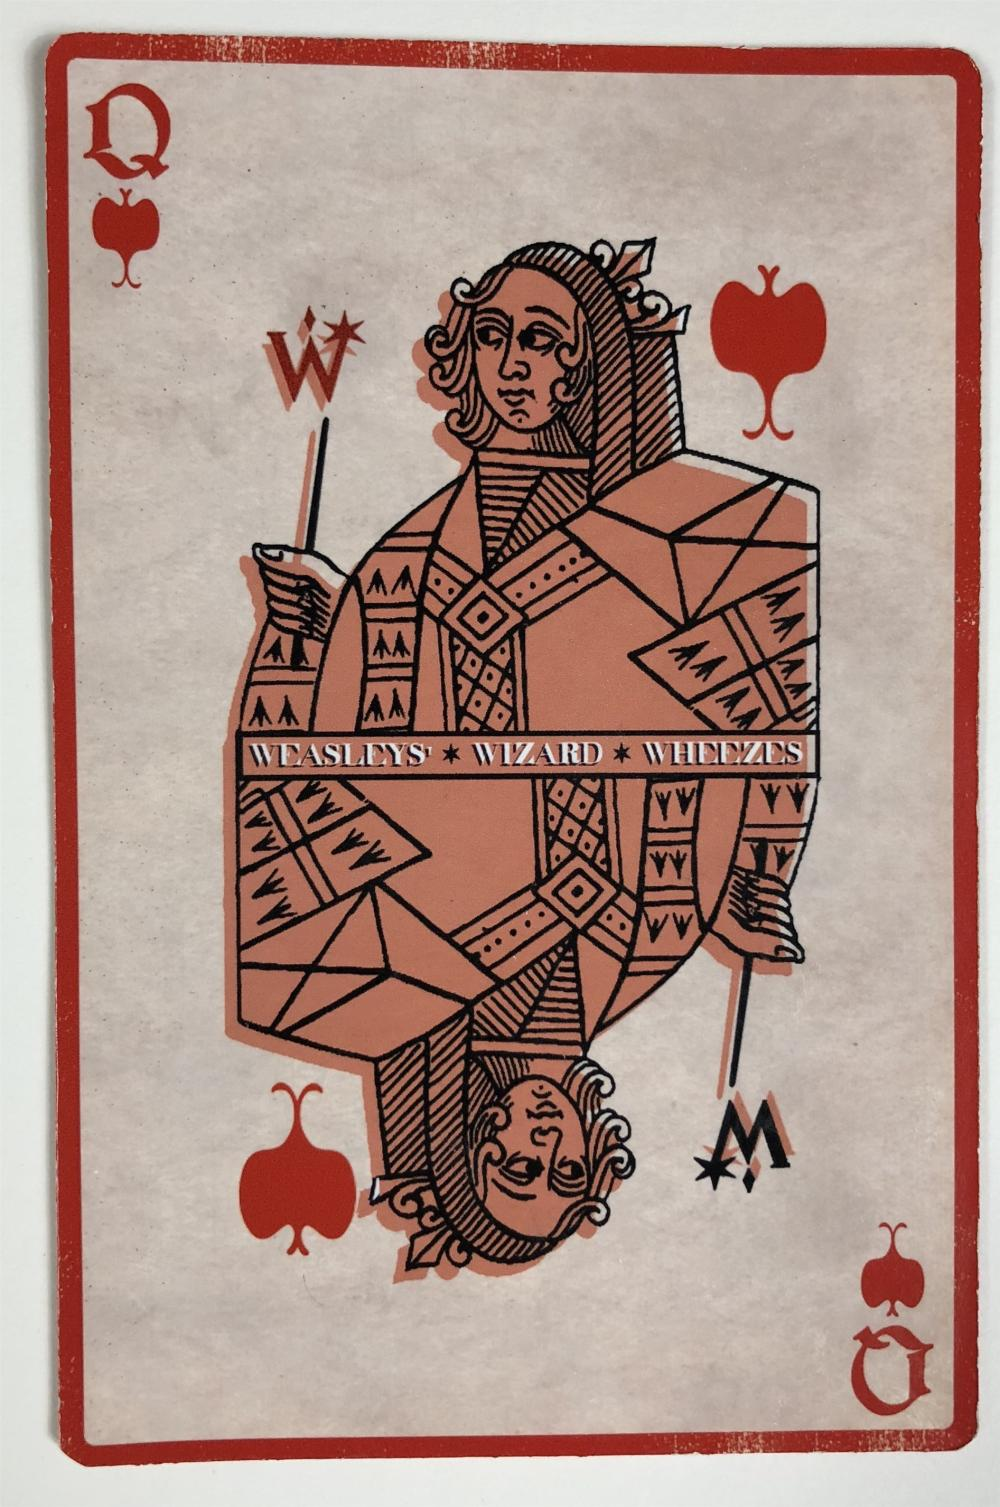 Harry Potter and the Half-Blood Prince (2009) - Weasleys' Wizard Wheezes Store Oversized Playing Card